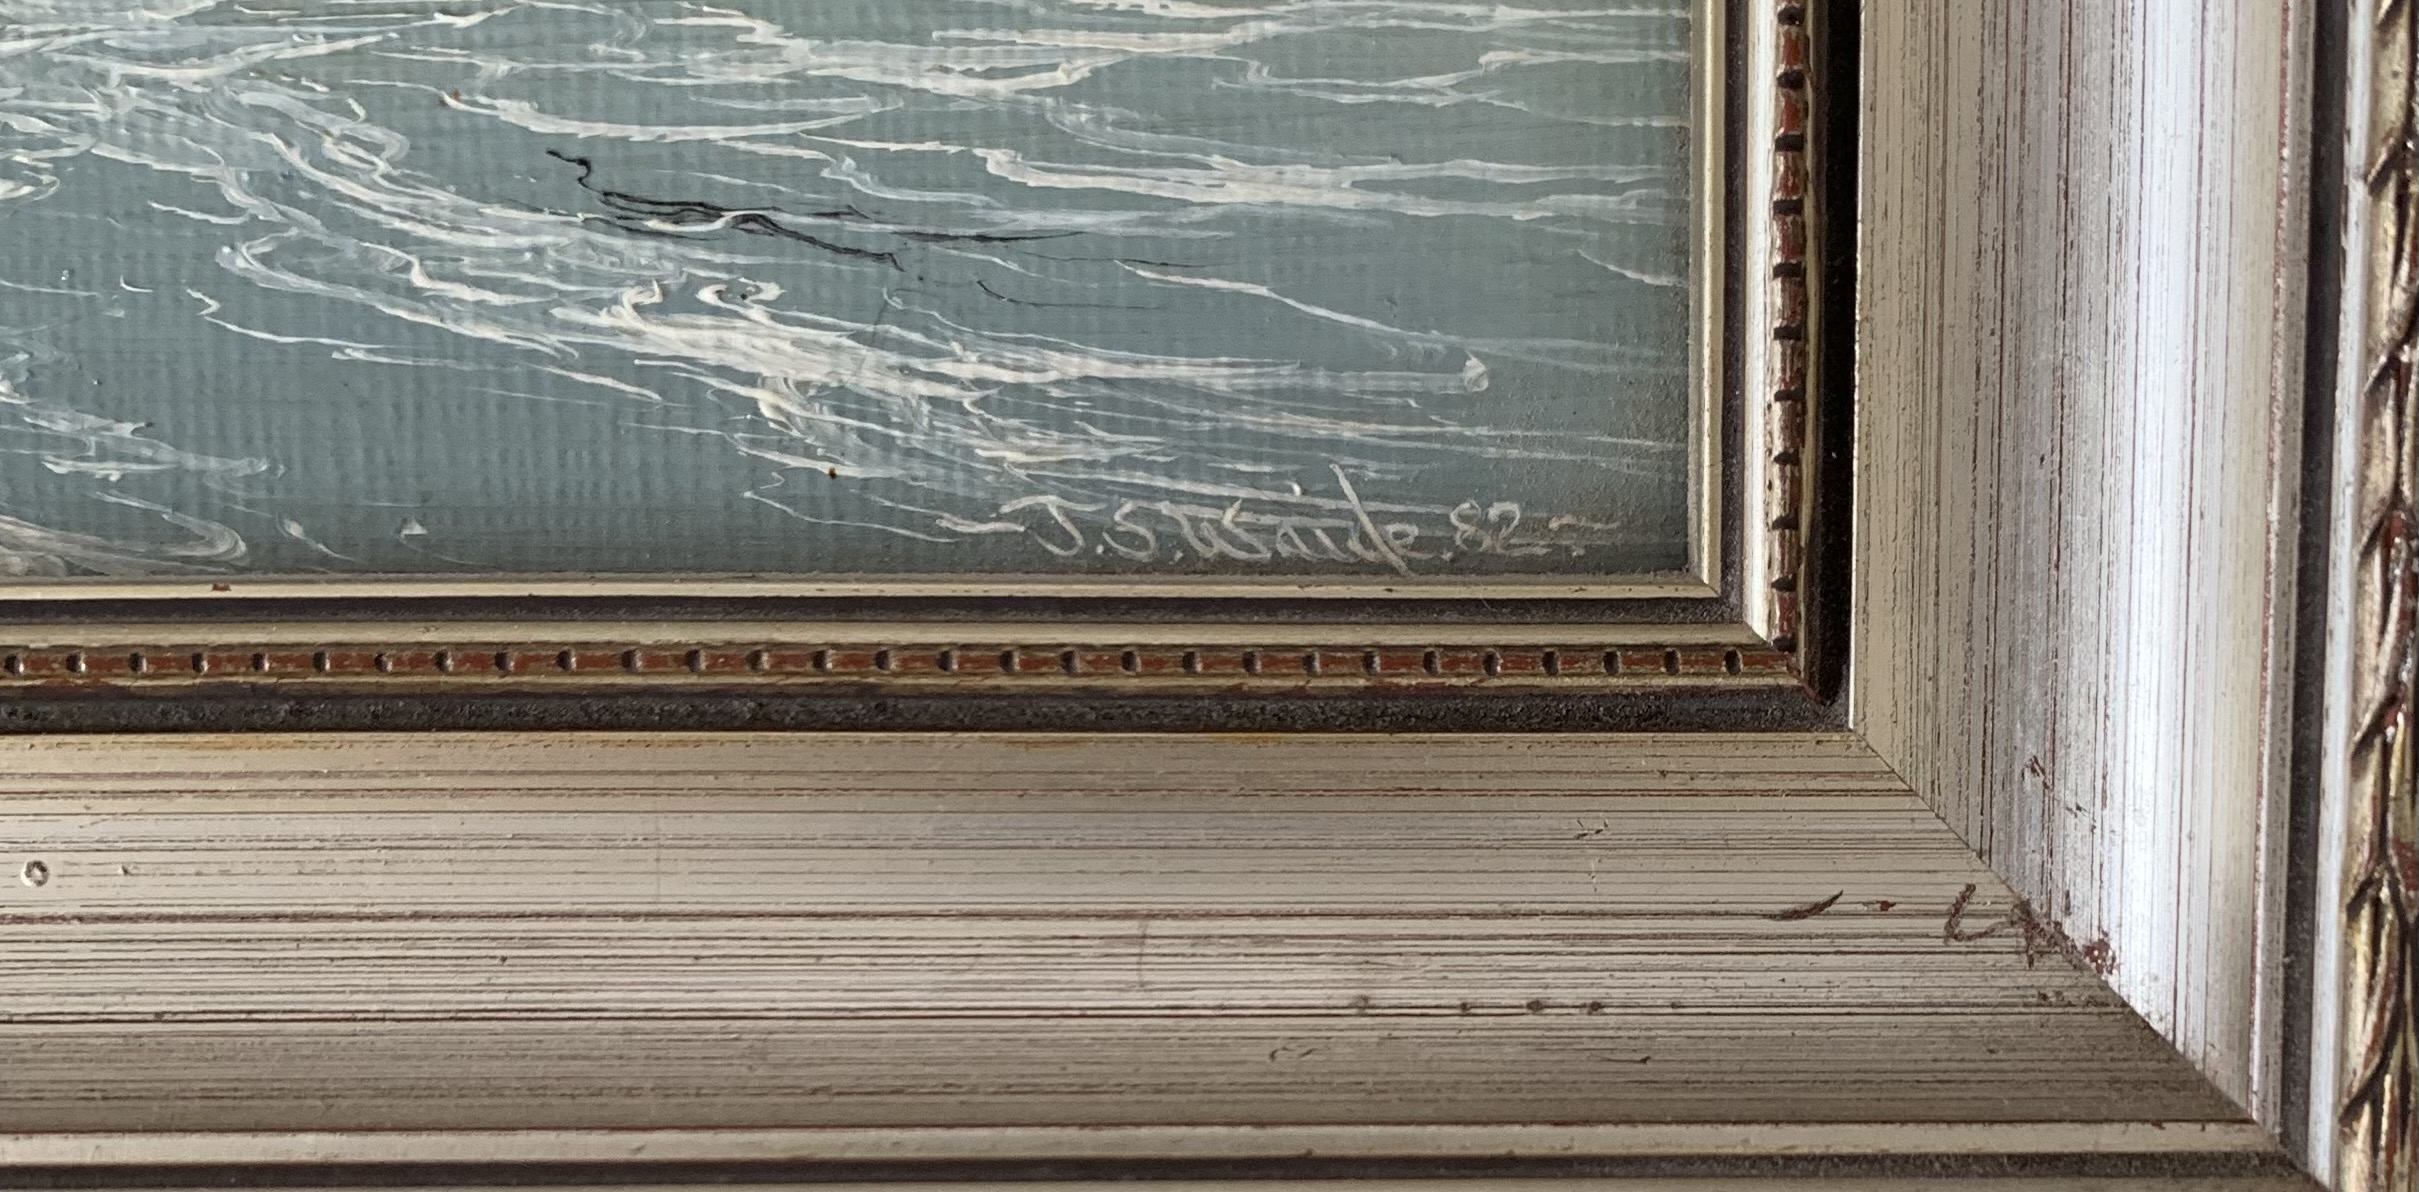 """Pair of oils of seascapes by J.S. Waide, images 9.5"""" x 7.5"""", frames 12"""" x 10"""" - Image 3 of 4"""